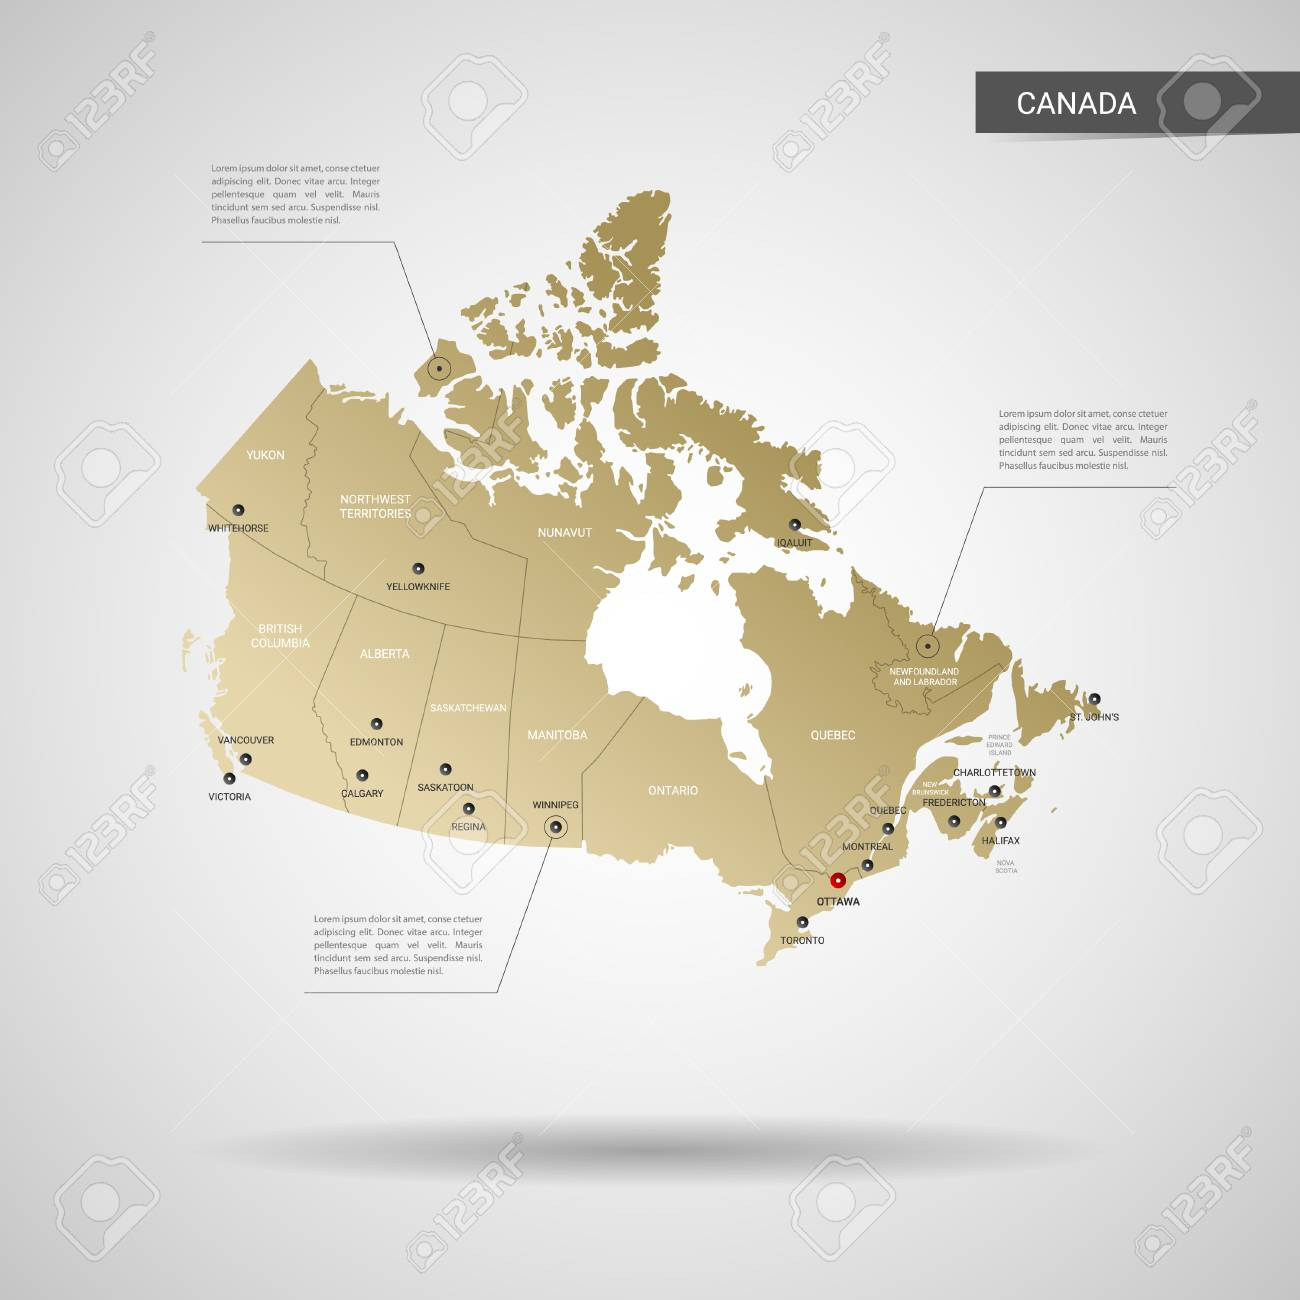 Canada Gold Map Stylized Vector Canada Map. Infographic 3d Gold Map Gradient